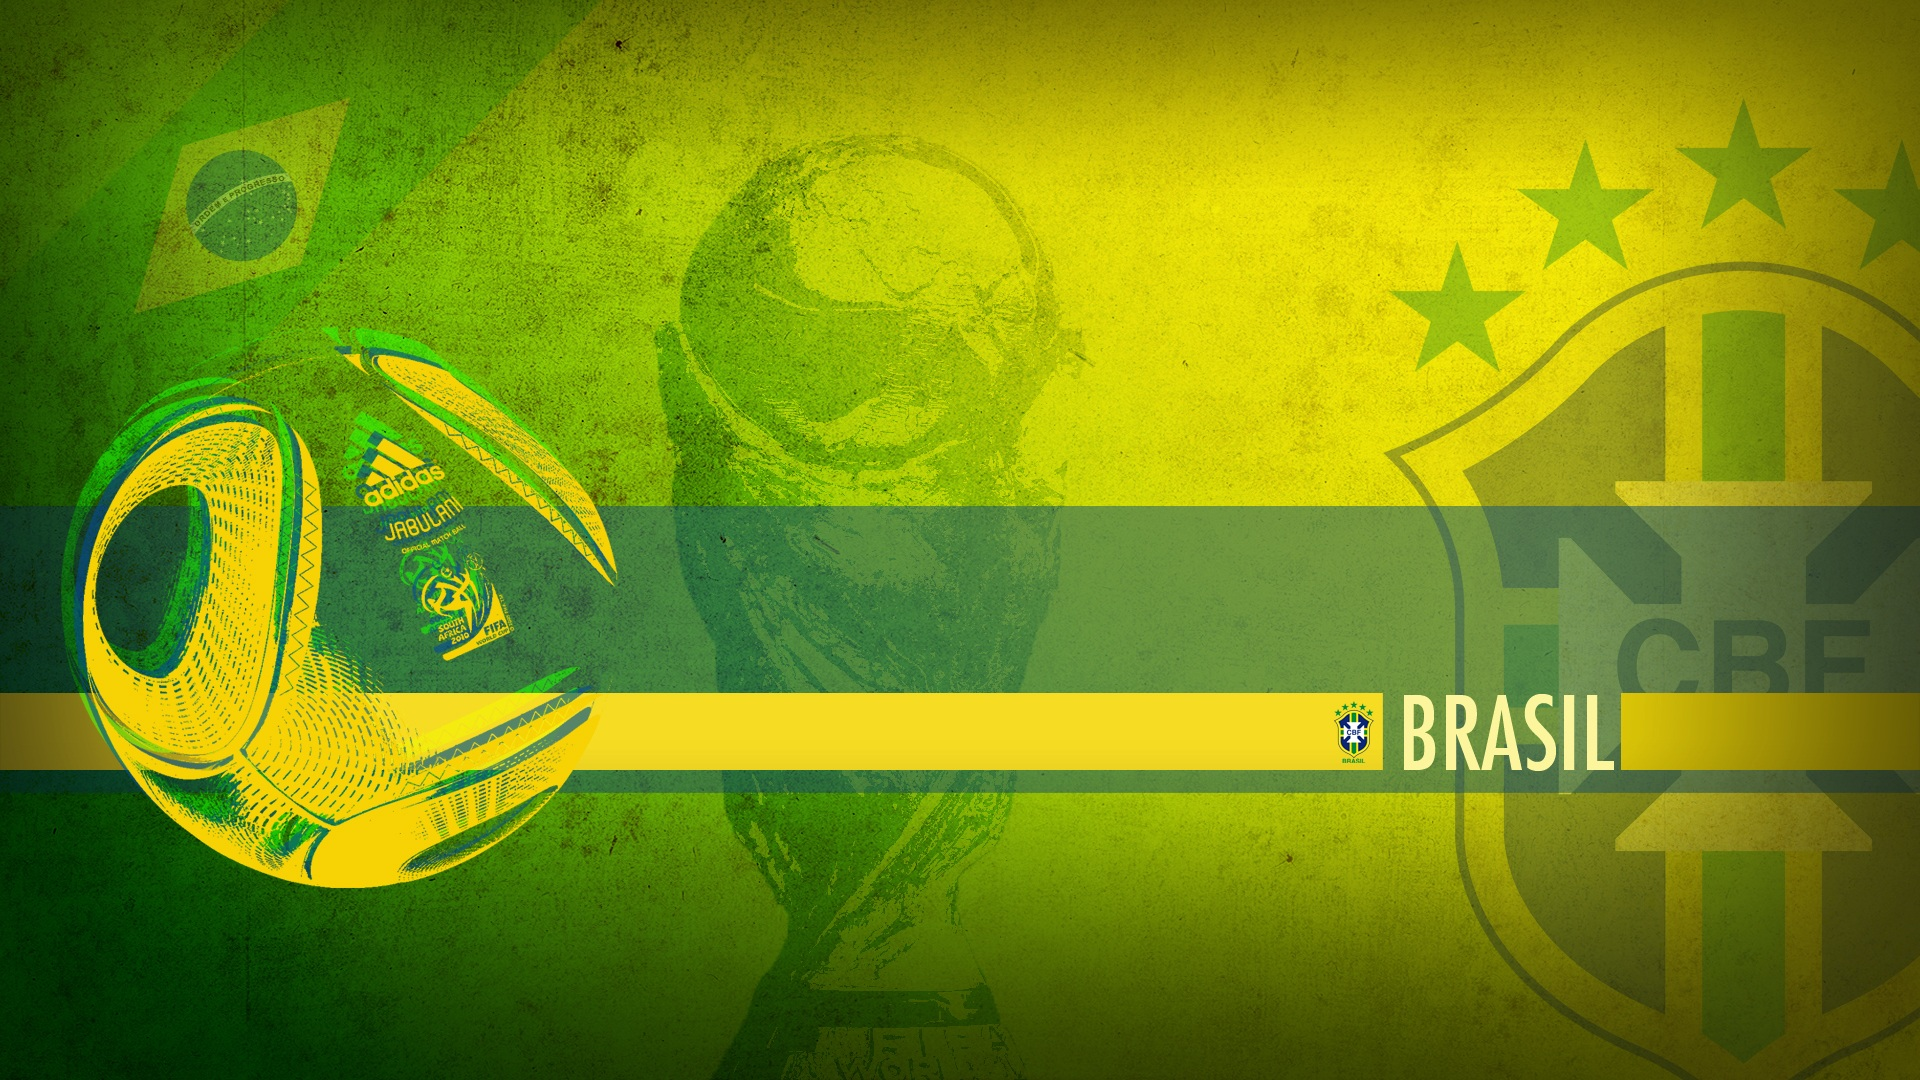 wallpaper.wiki World Cup Brazil Photos 1 PIC WPC004170 Football Live Wallpapers HD